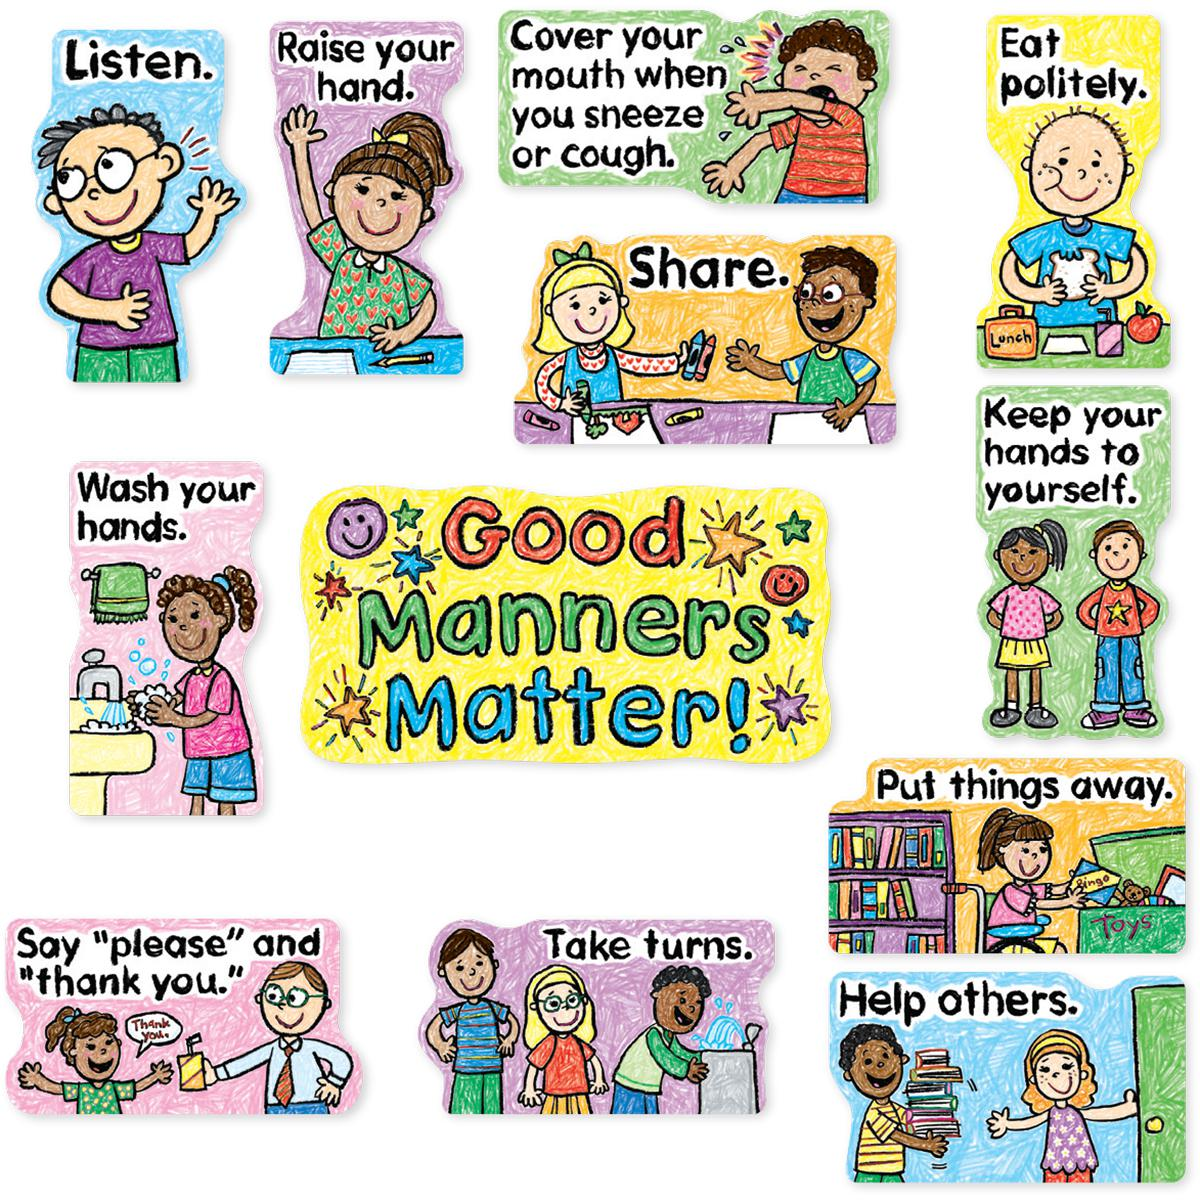 Good Manners Matter! Mini Bulletin Board Set